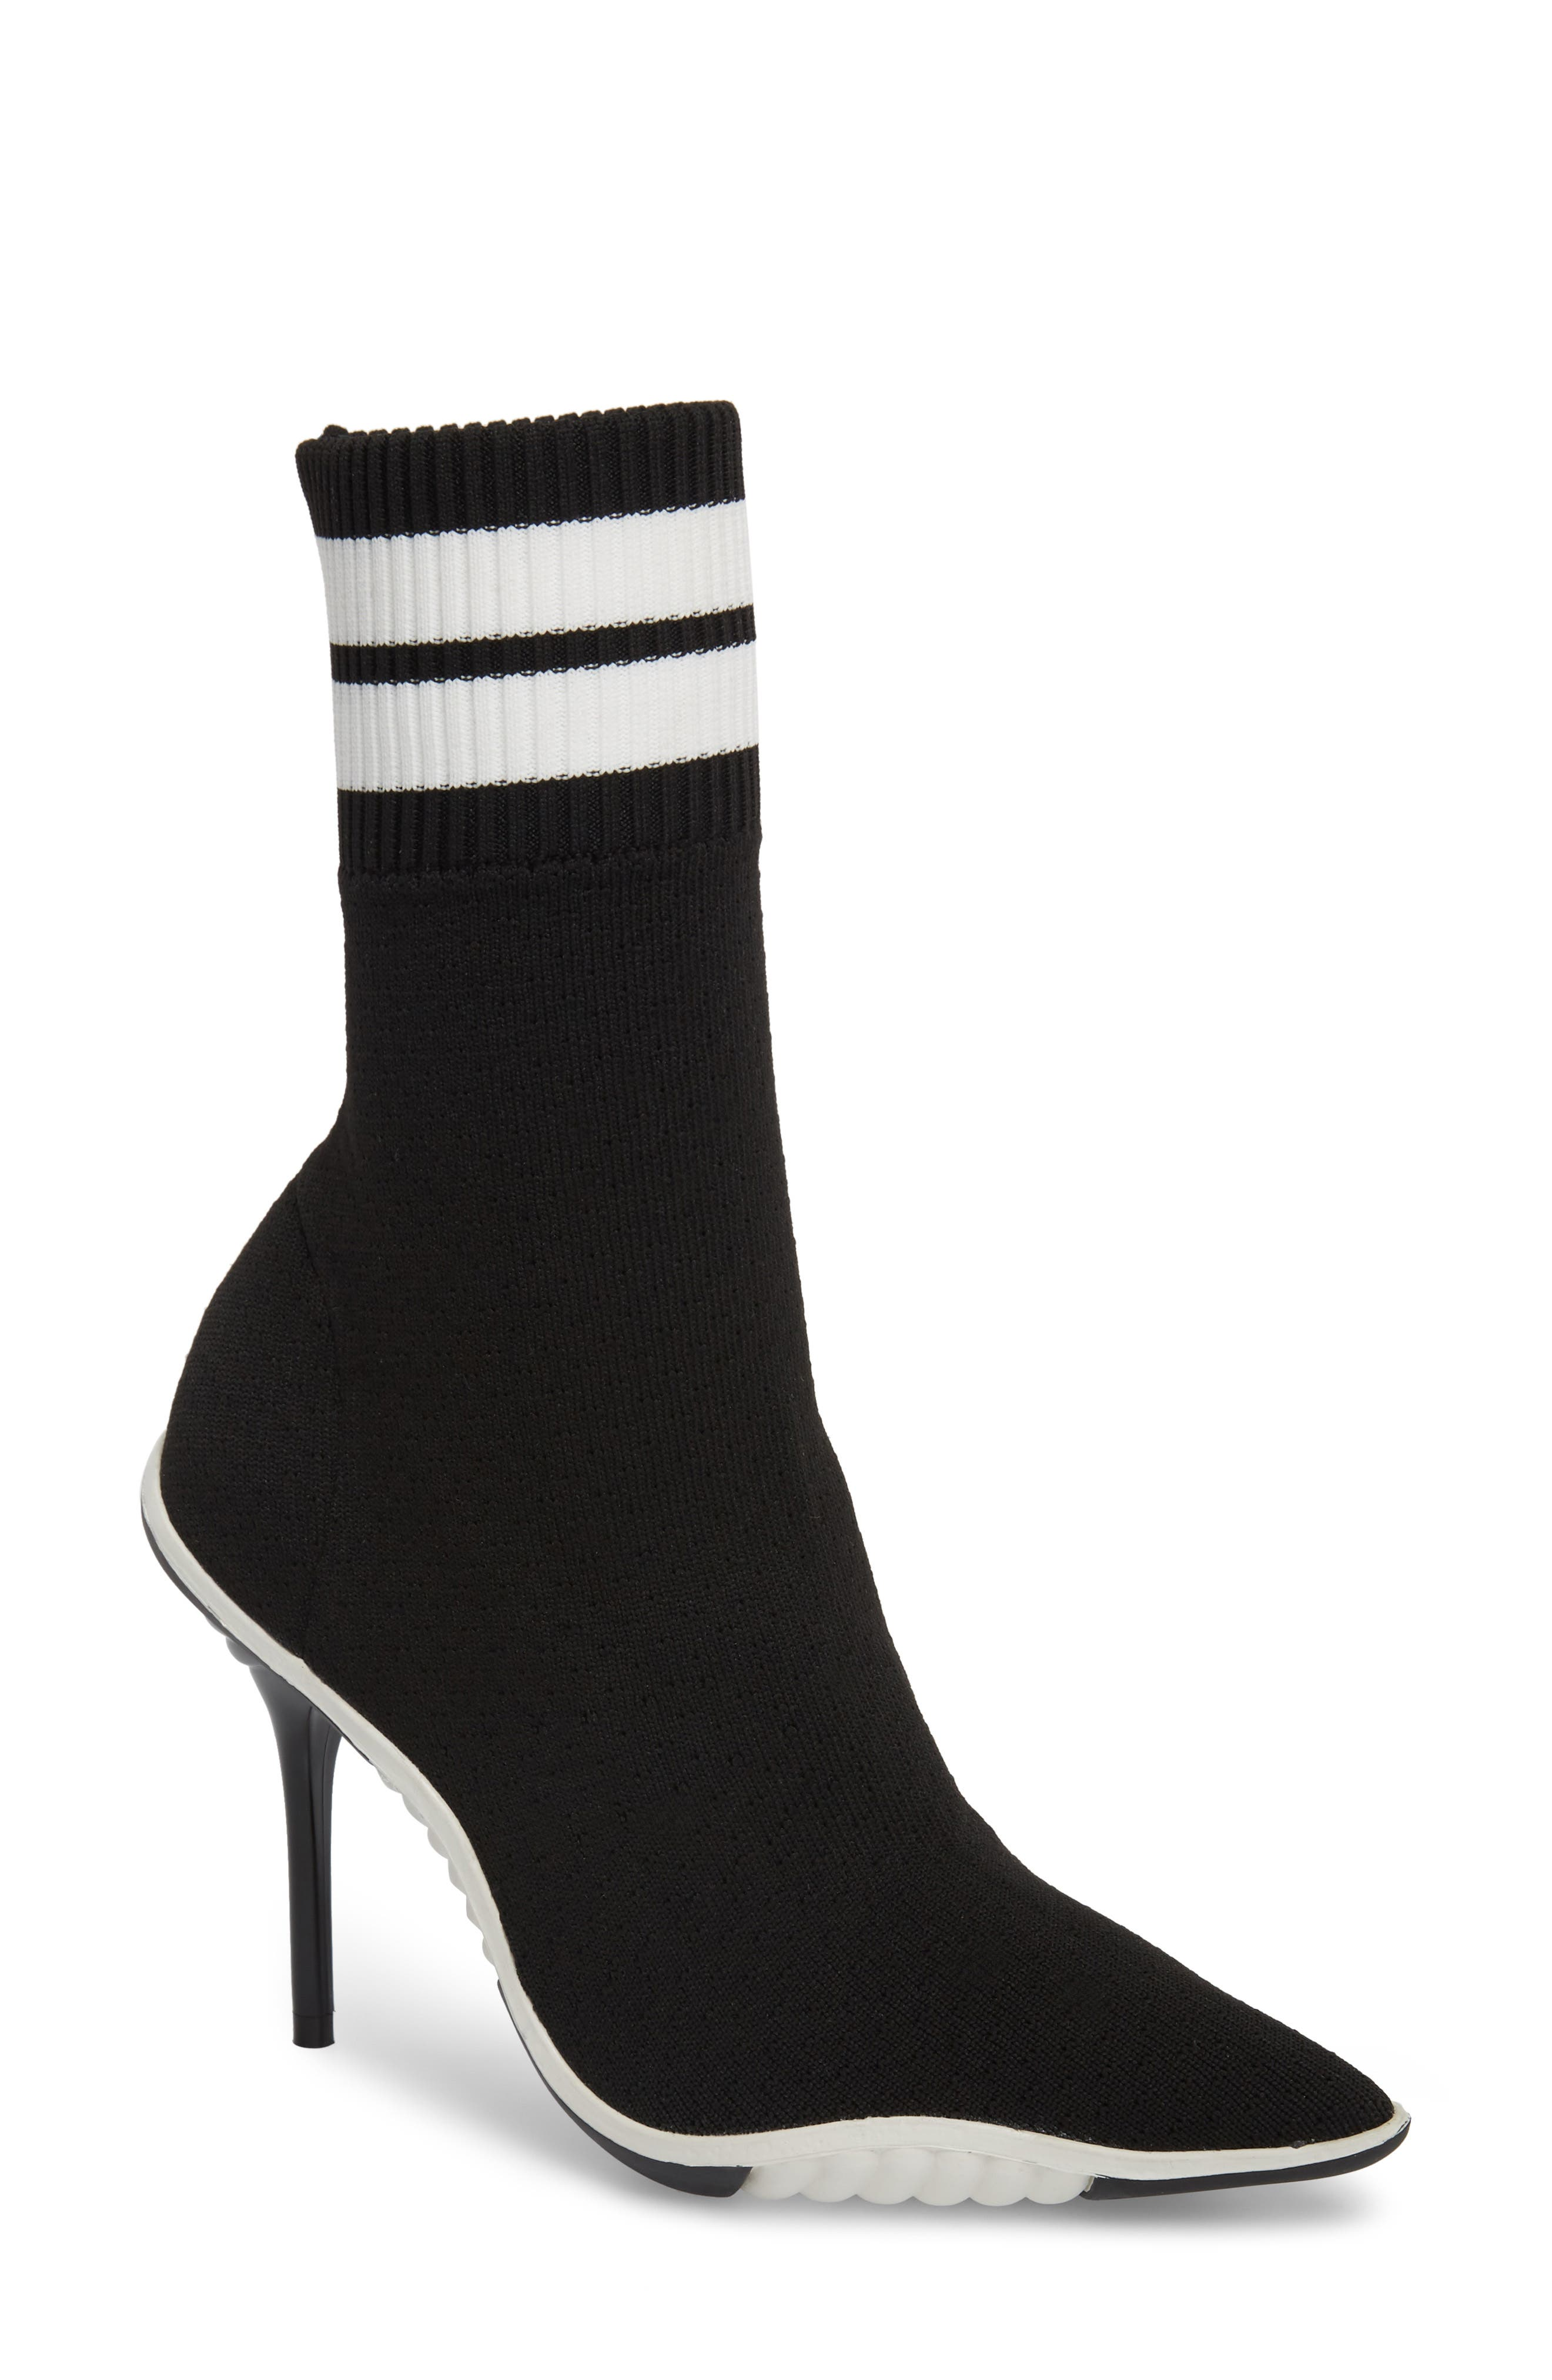 JEFFREY CAMPBELL, Goal Sock Sneaker Bootie, Main thumbnail 1, color, BLACK/ WHITE FABRIC